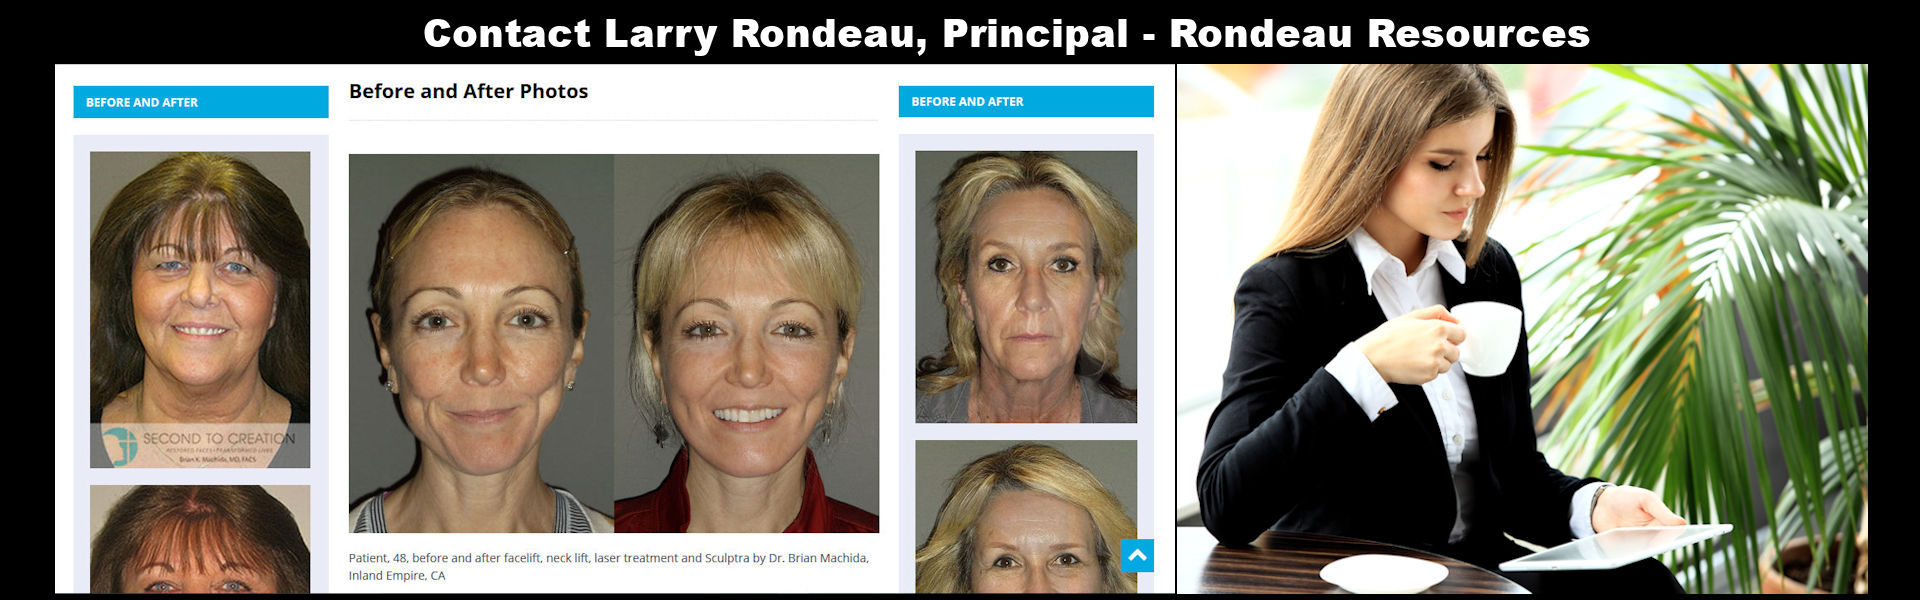 Rondeau Resources,Larry Rondeeau